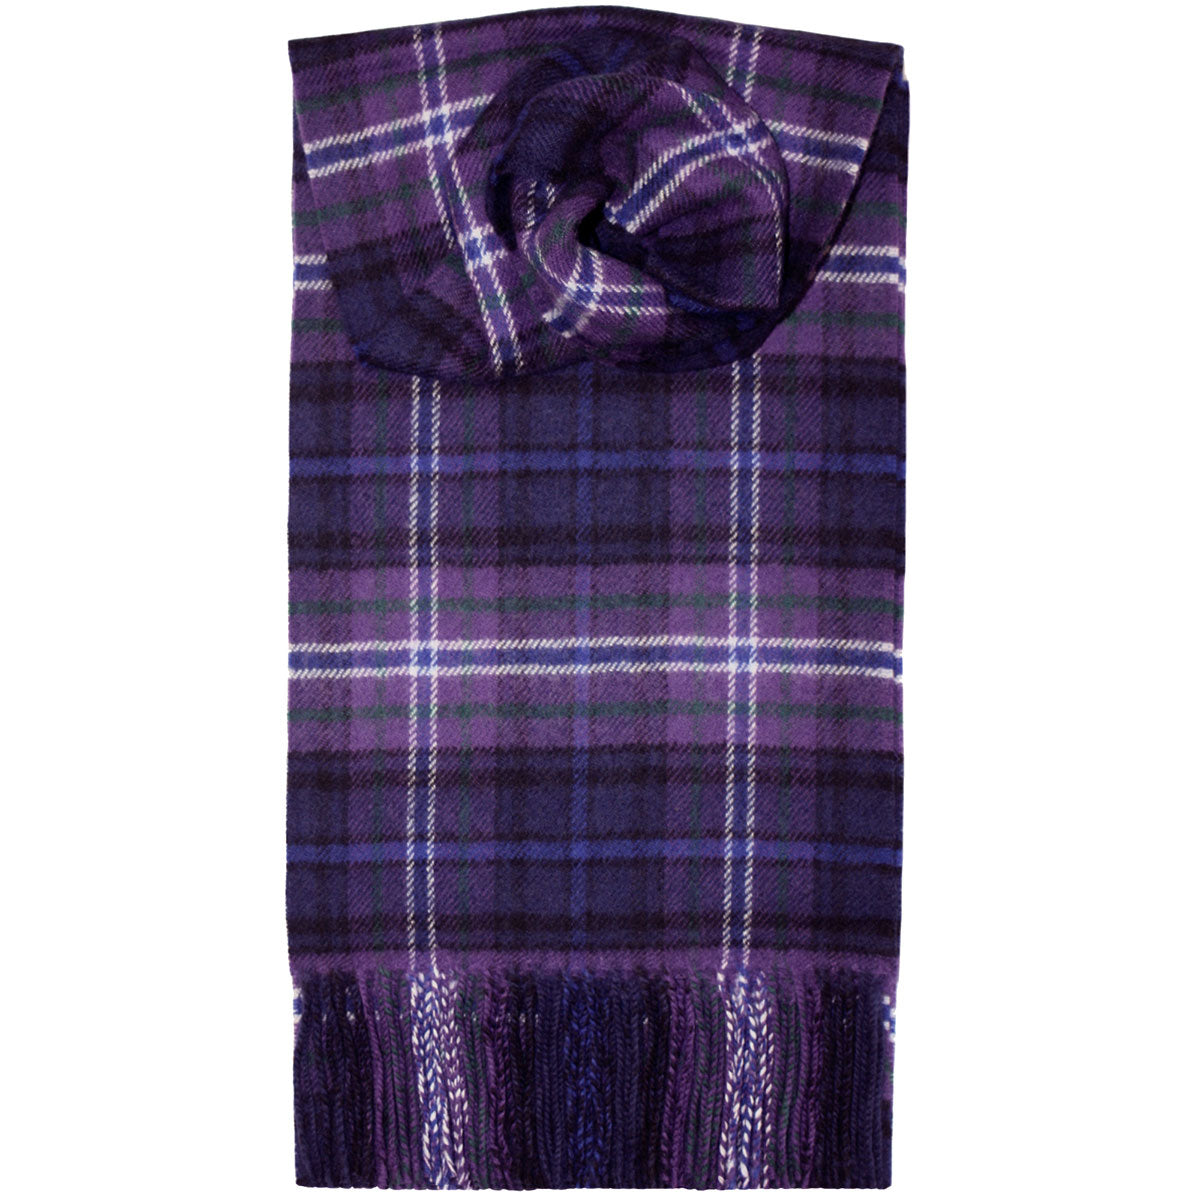 Wool Scarf, Scotland Forever, Modern